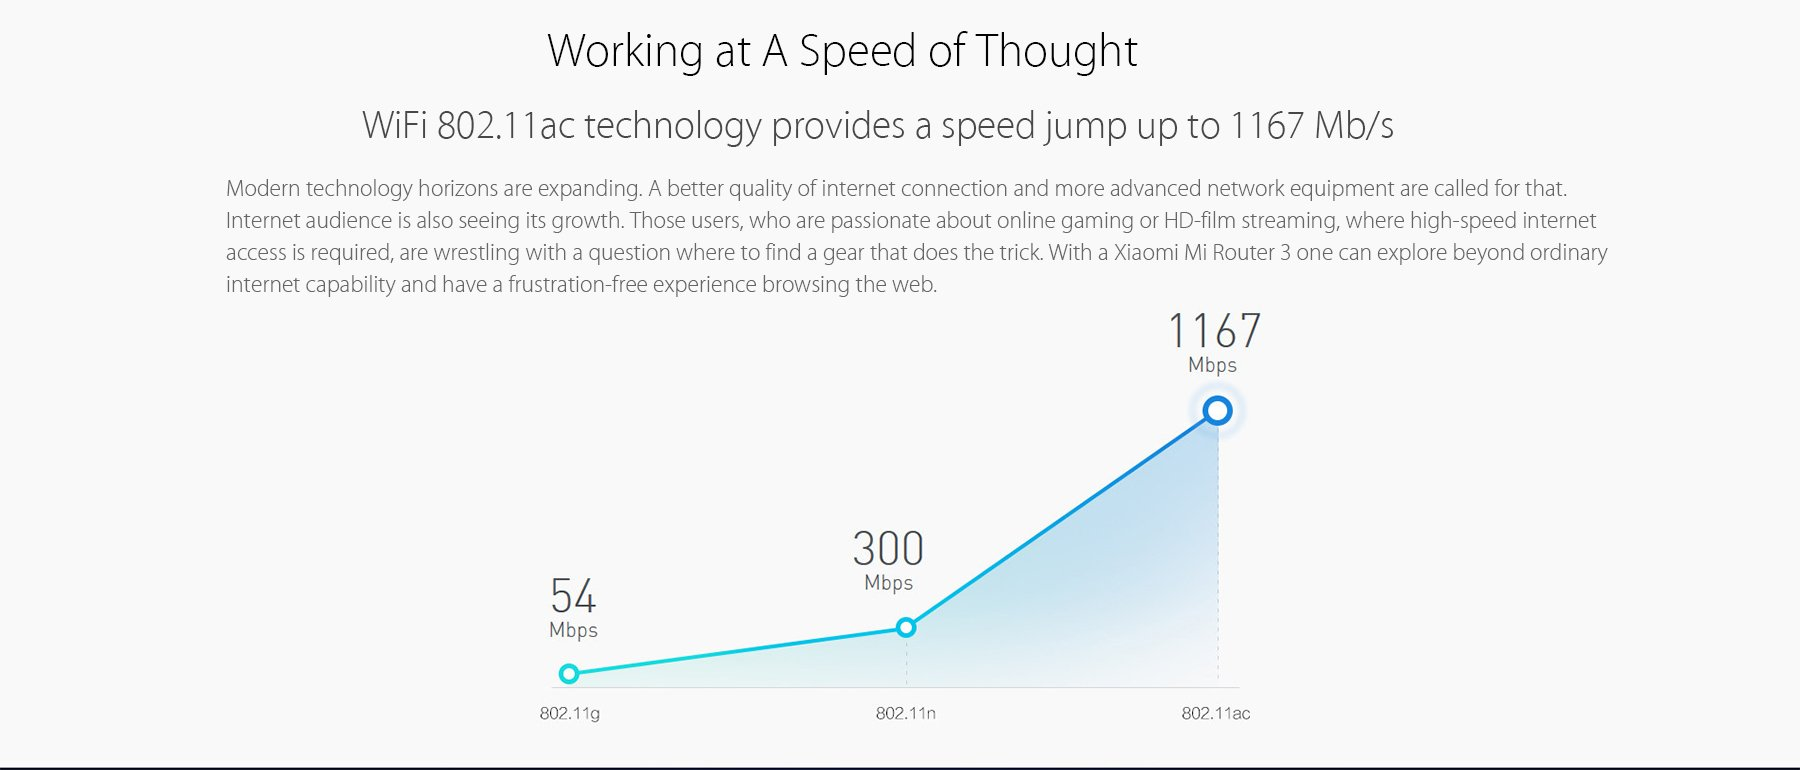 WiFi ac technology provides a speed jump upto 1167Mb/s